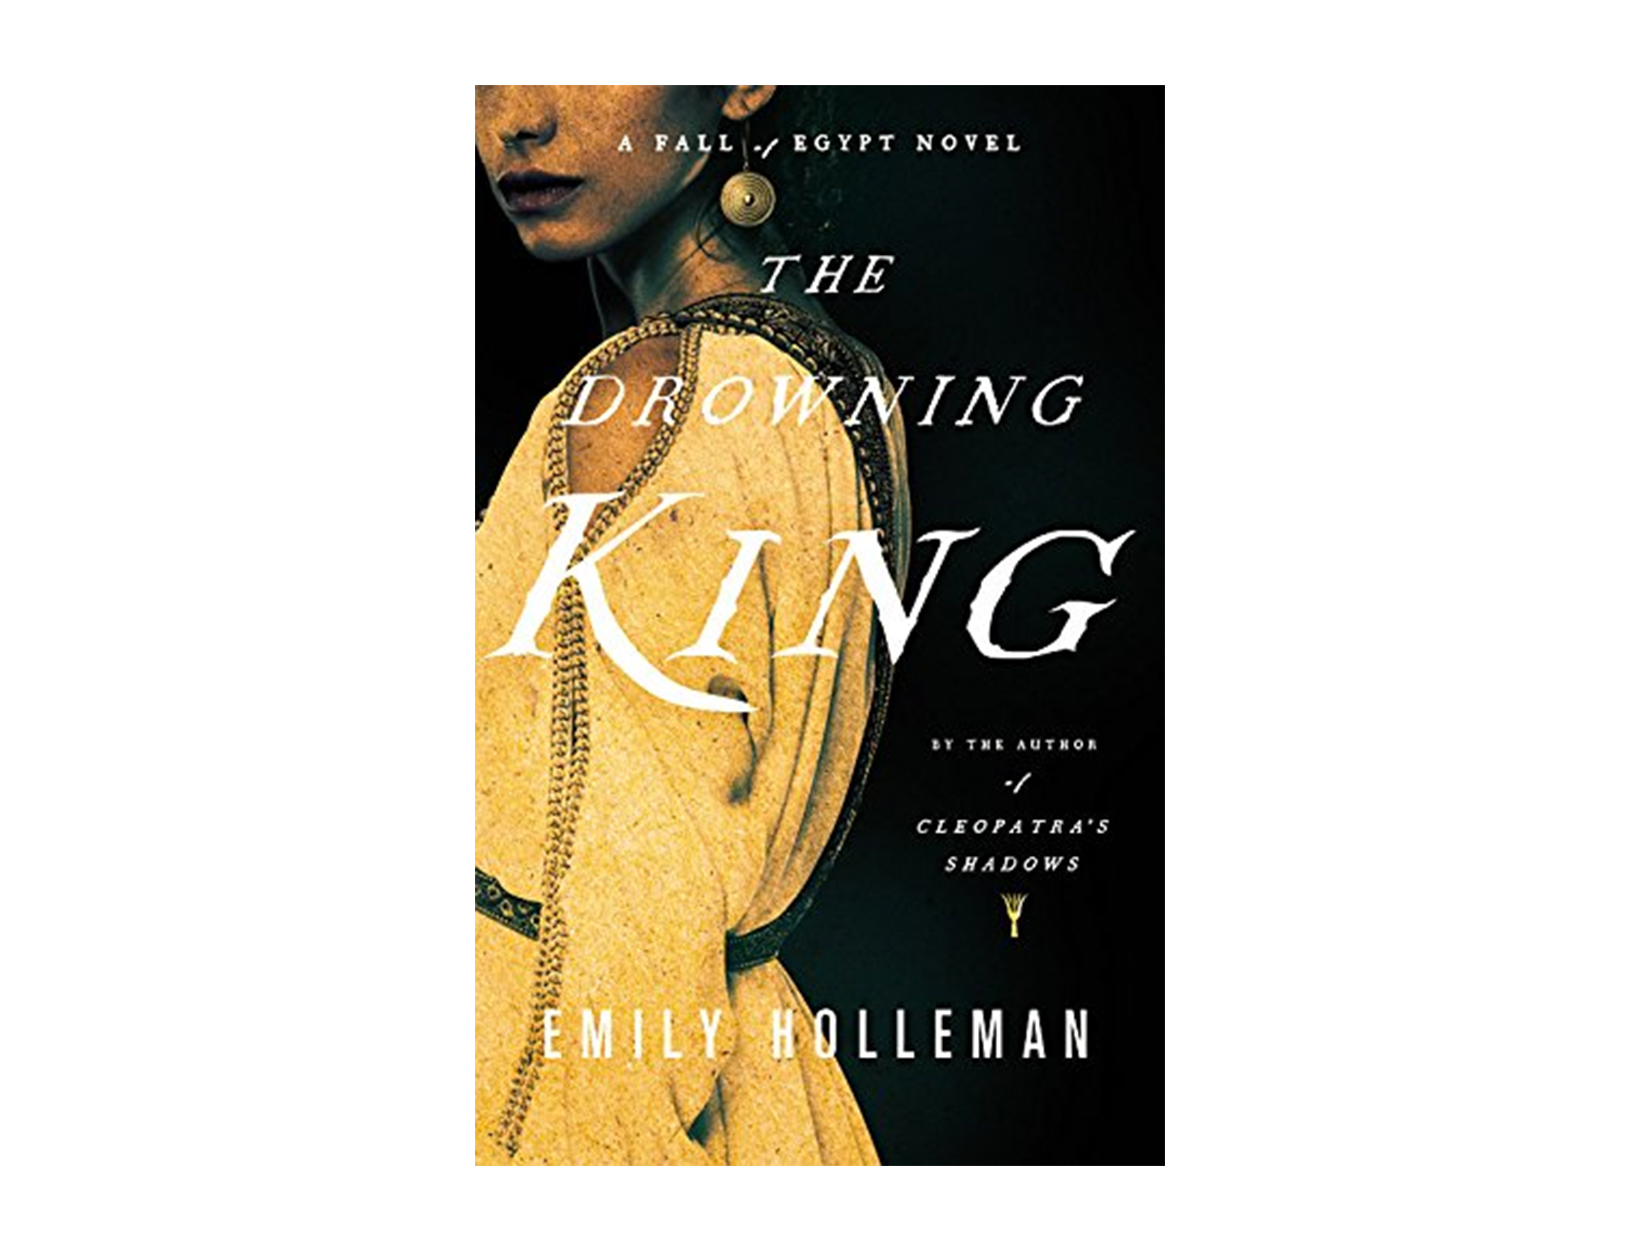 The Drowning King by Emily Holleman